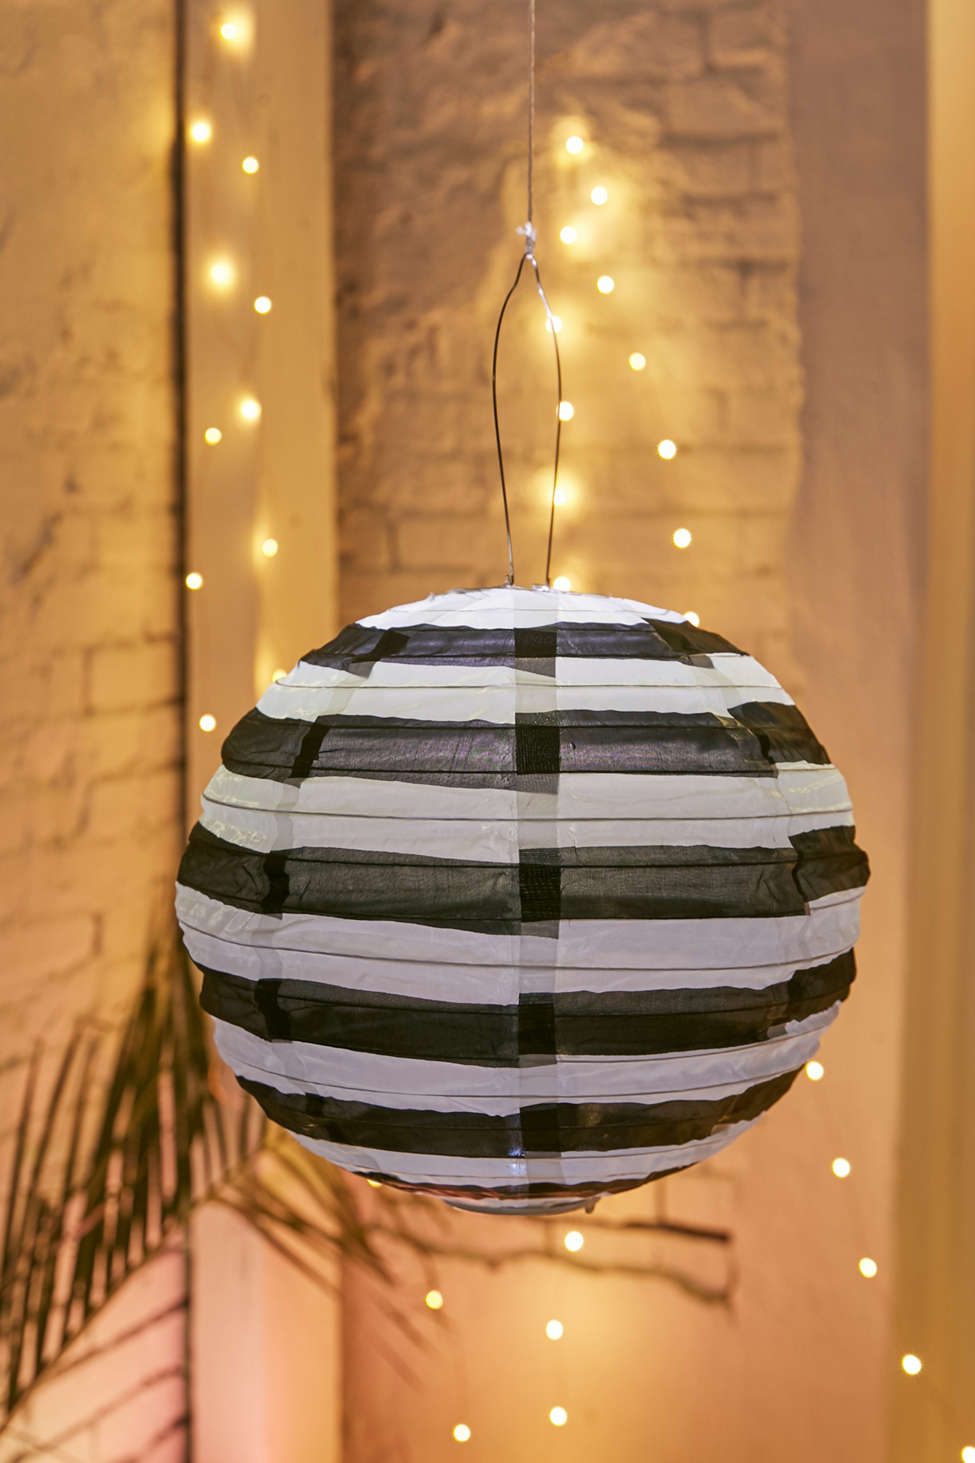 Slide View: 1: Sojiâ?¢ Black + White 14â?� Striped Round Solar Lantern